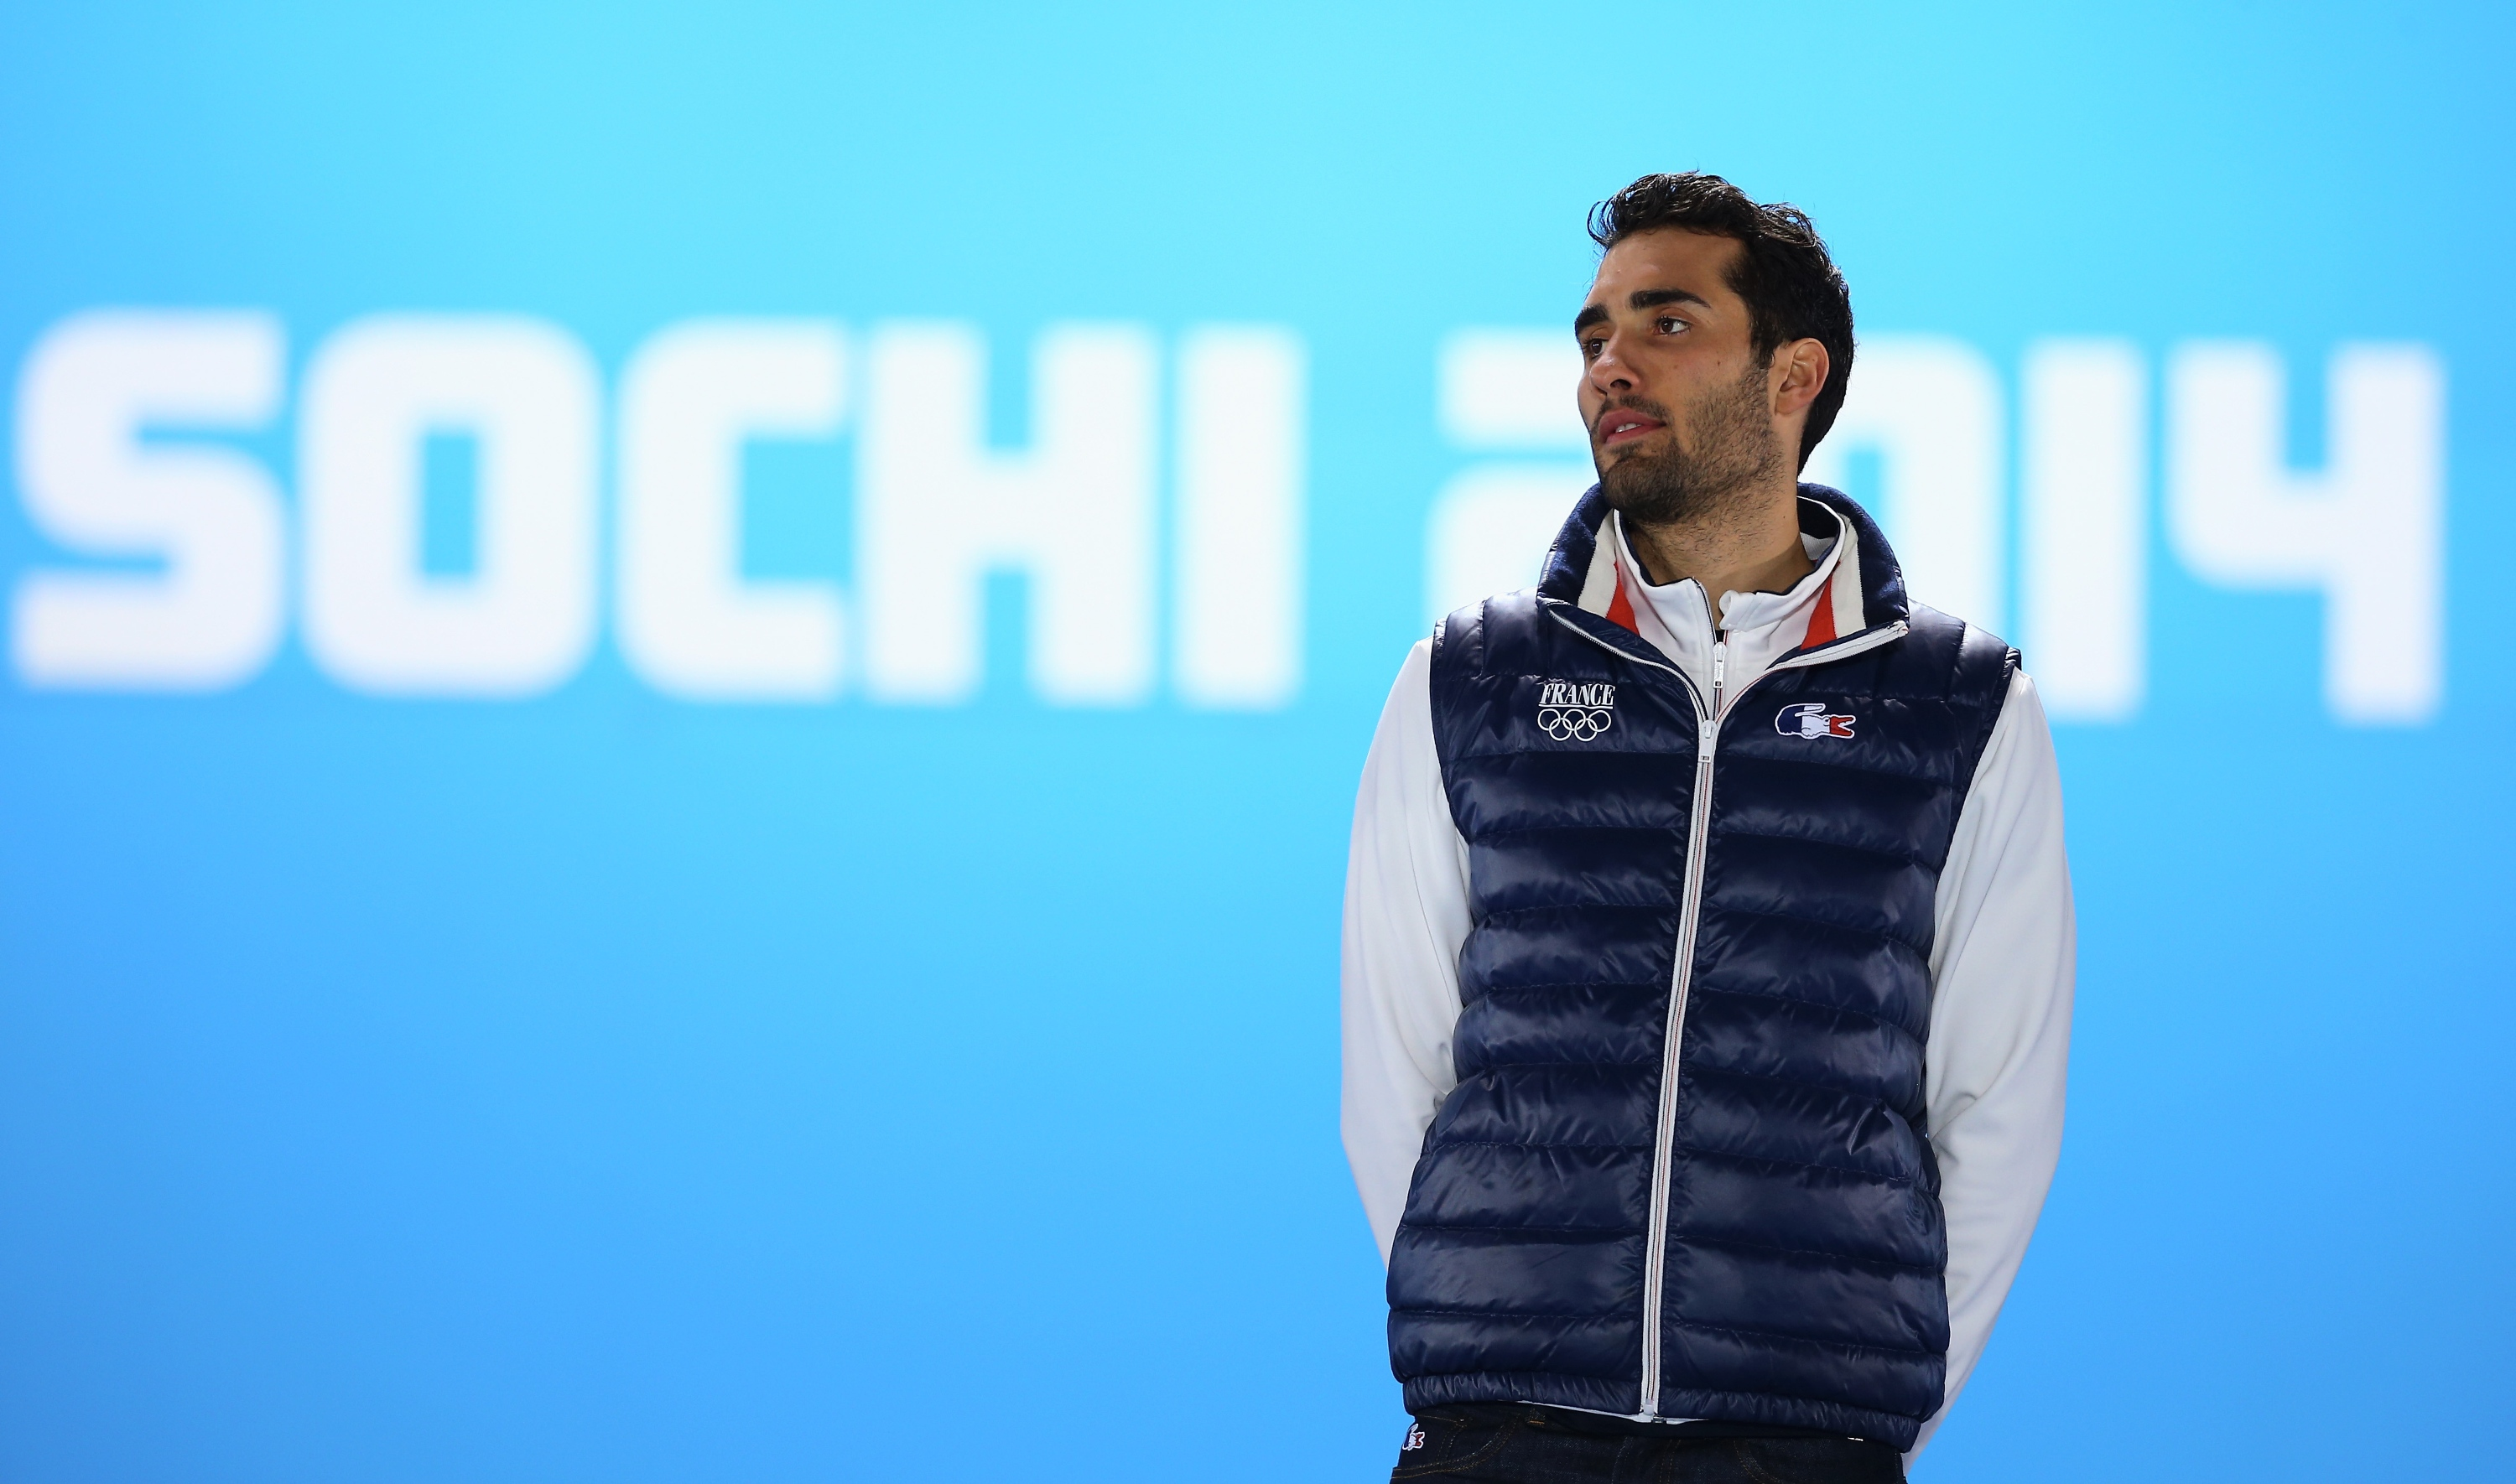 All Martin Fourcade wallpapers